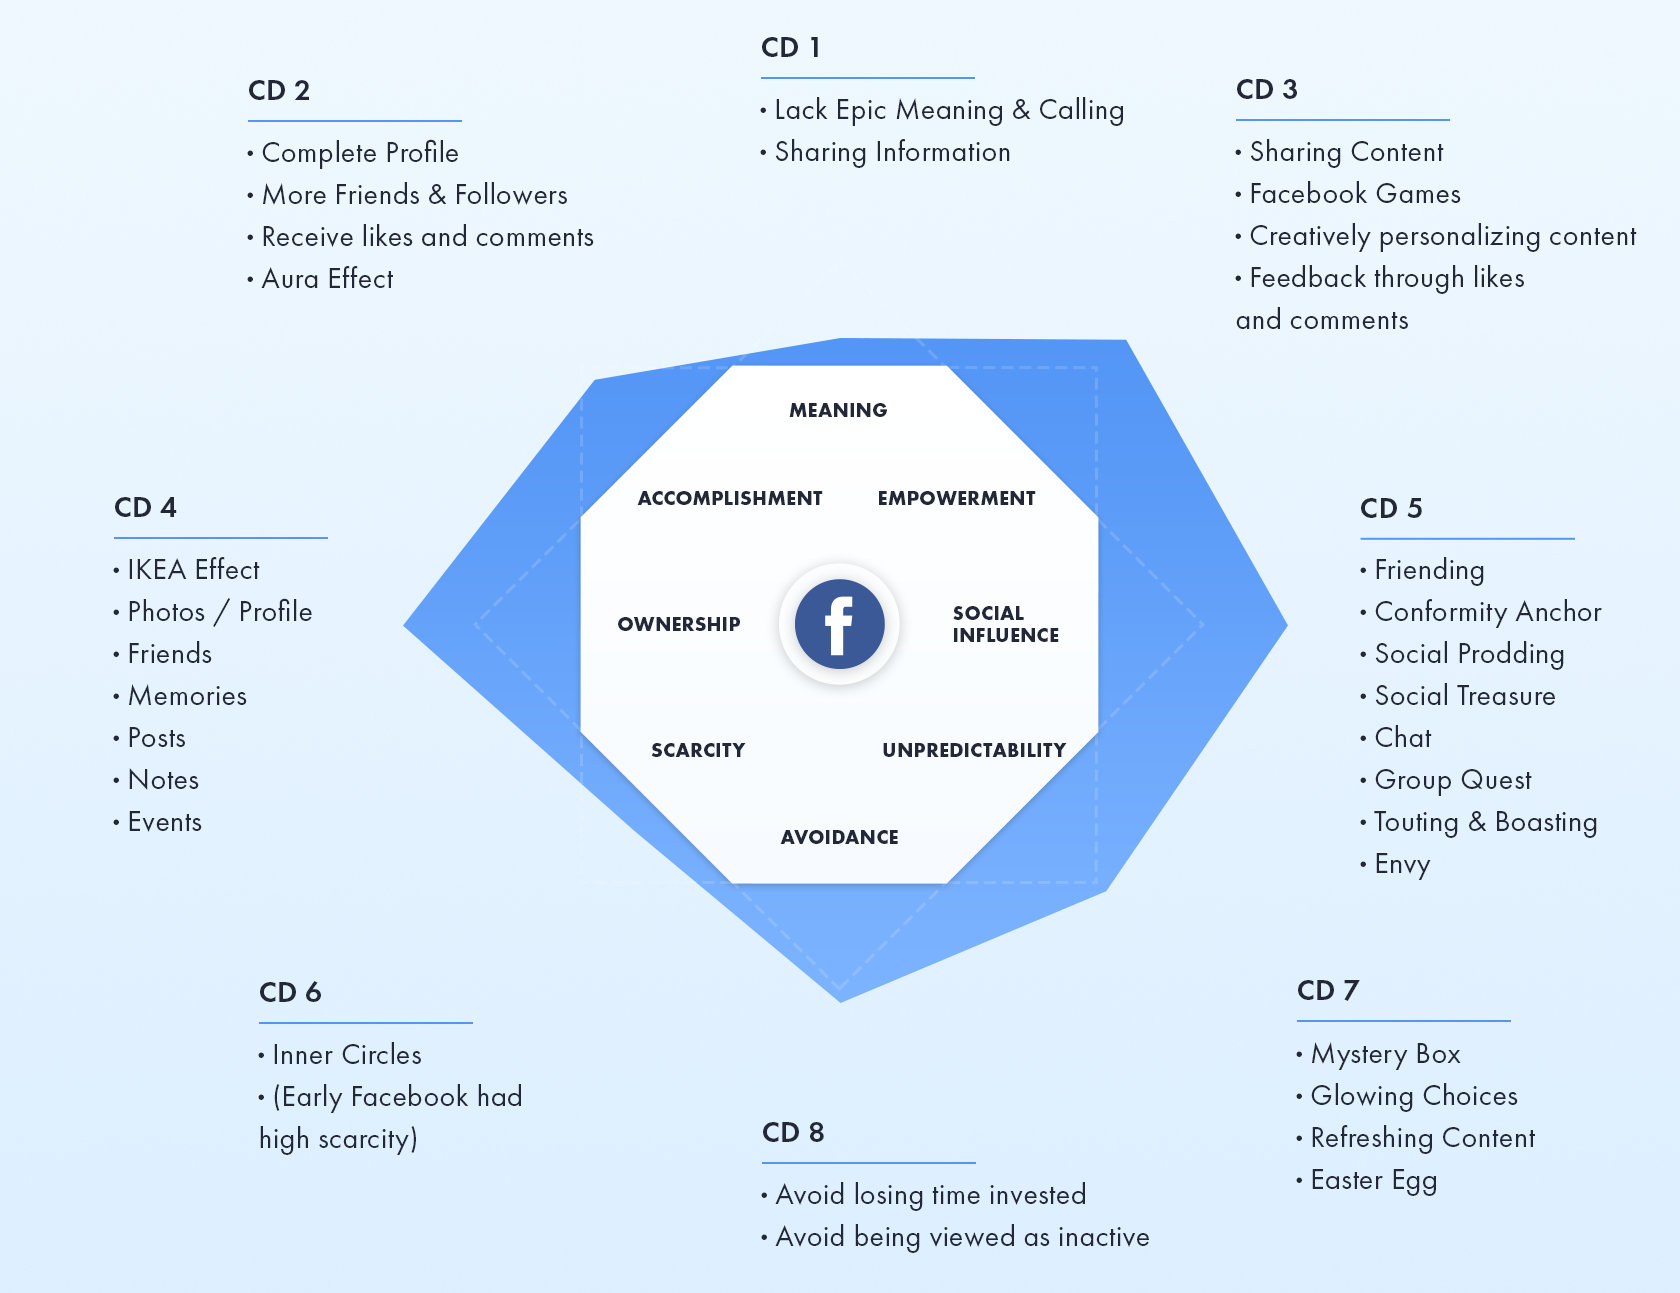 Estudio de caso de Gamification Design en Facebook: el marco de trabajo de Octalysis